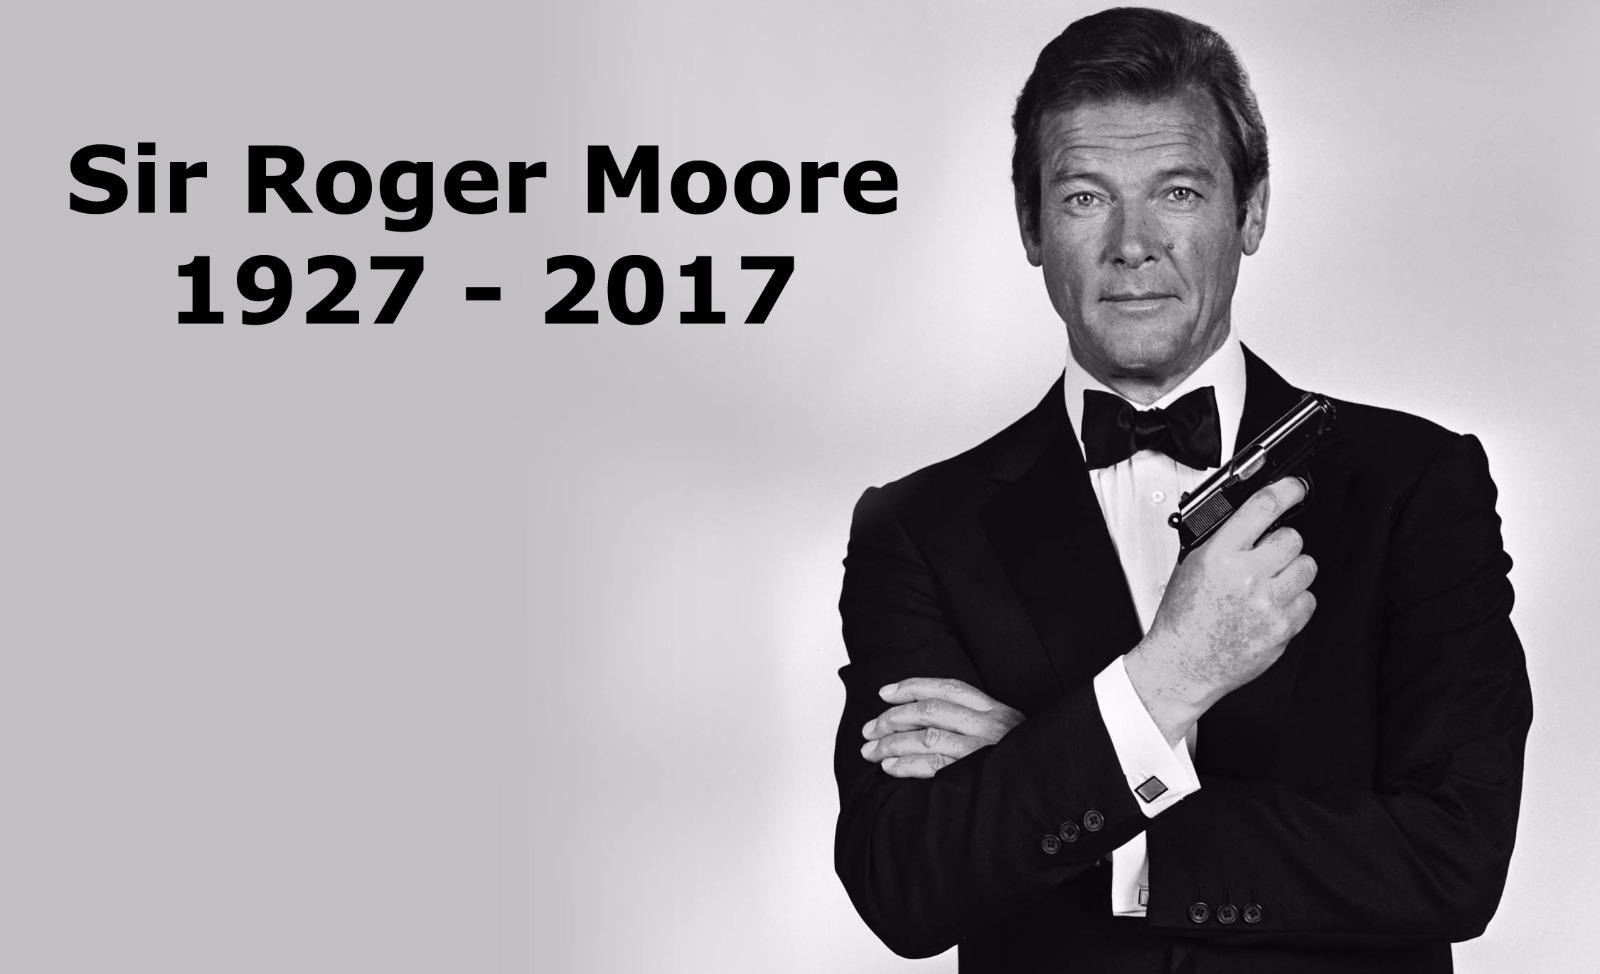 James bond star roger moore dies aged 89 heyuguys - James bond images hd ...